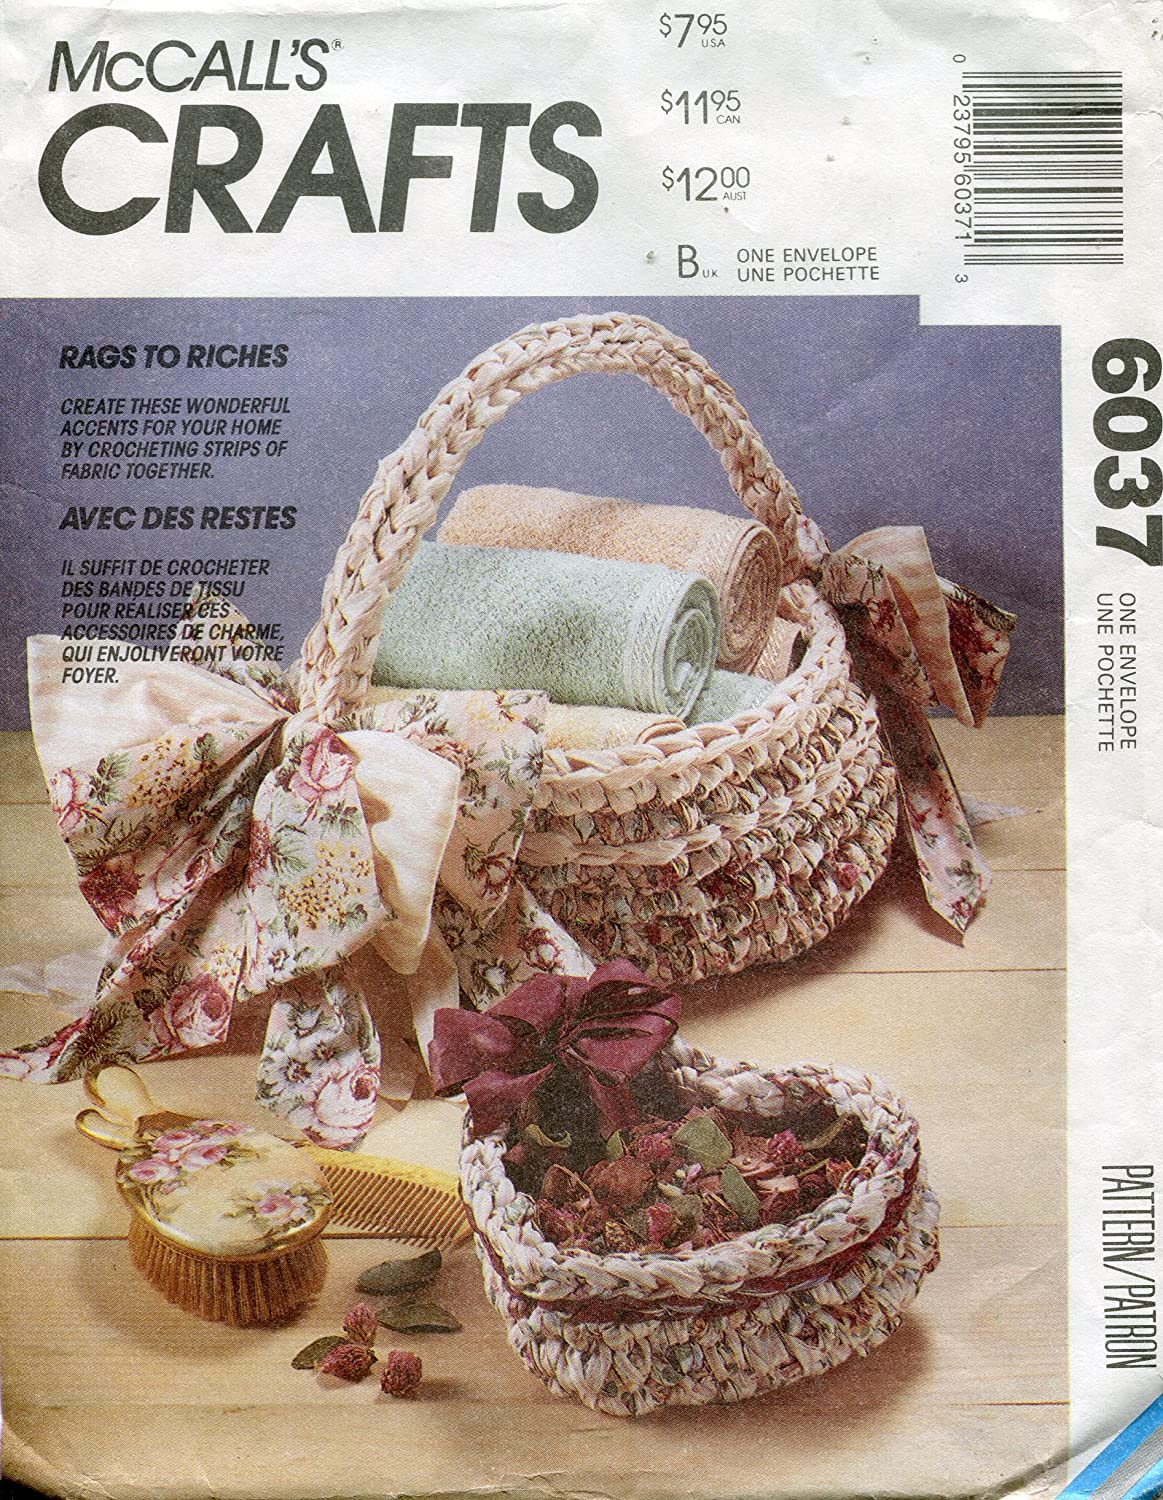 McCall's Crafts Pattern 6037 Rag Crochet Package McCall's